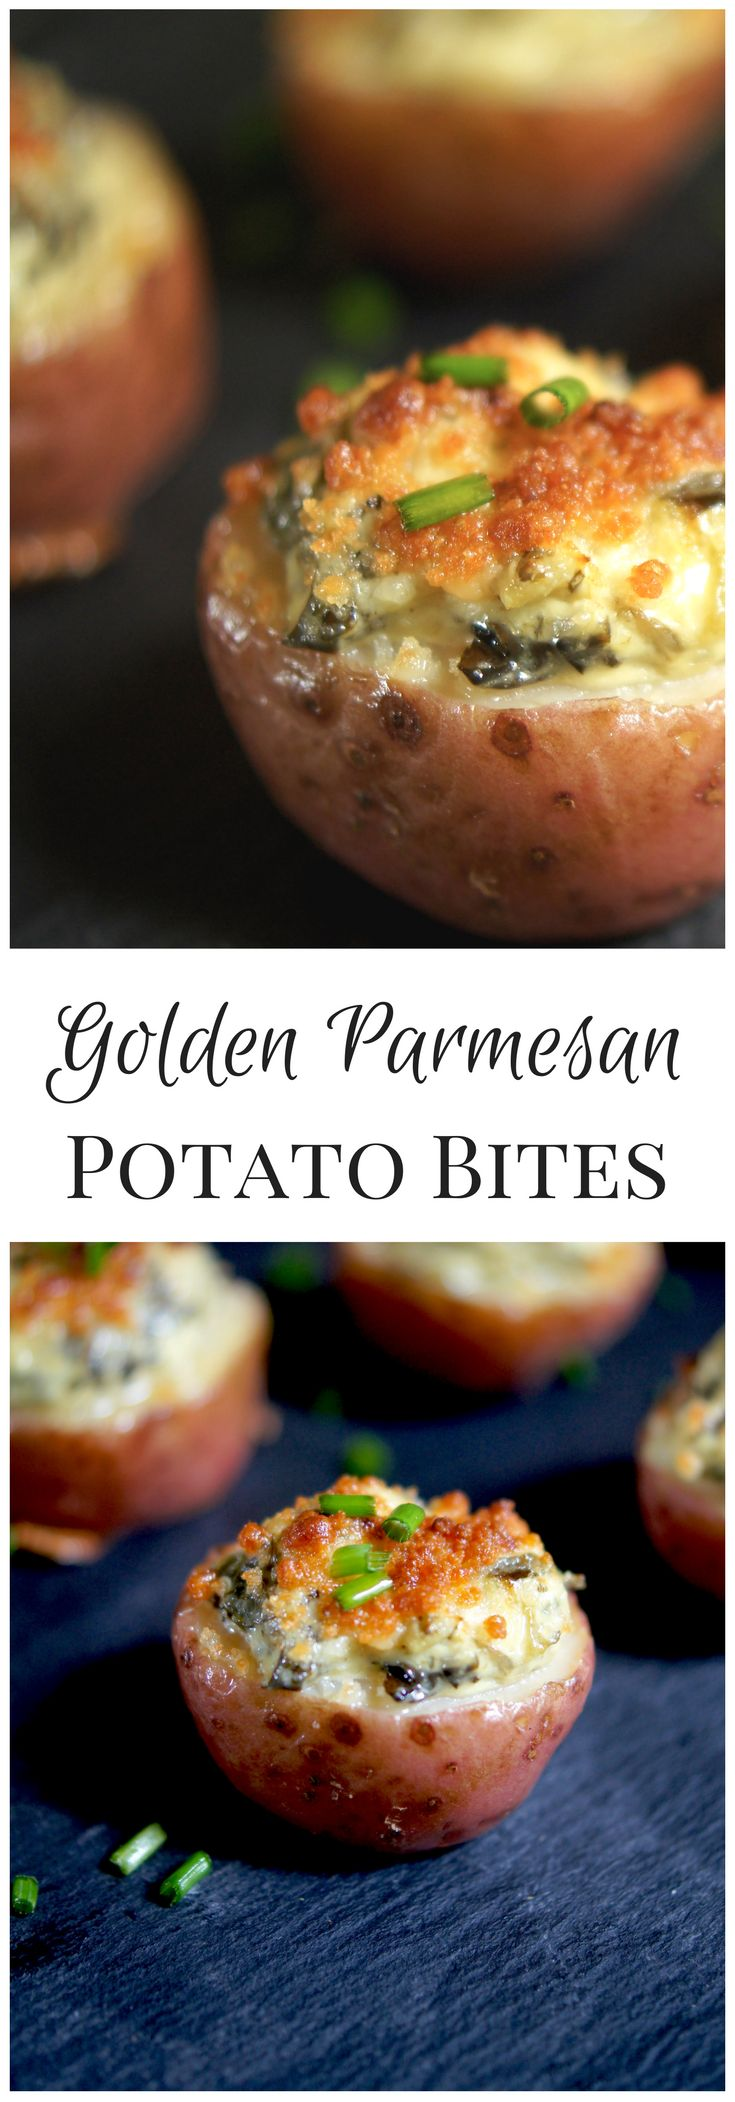 Golden Parmesan Potato Bites